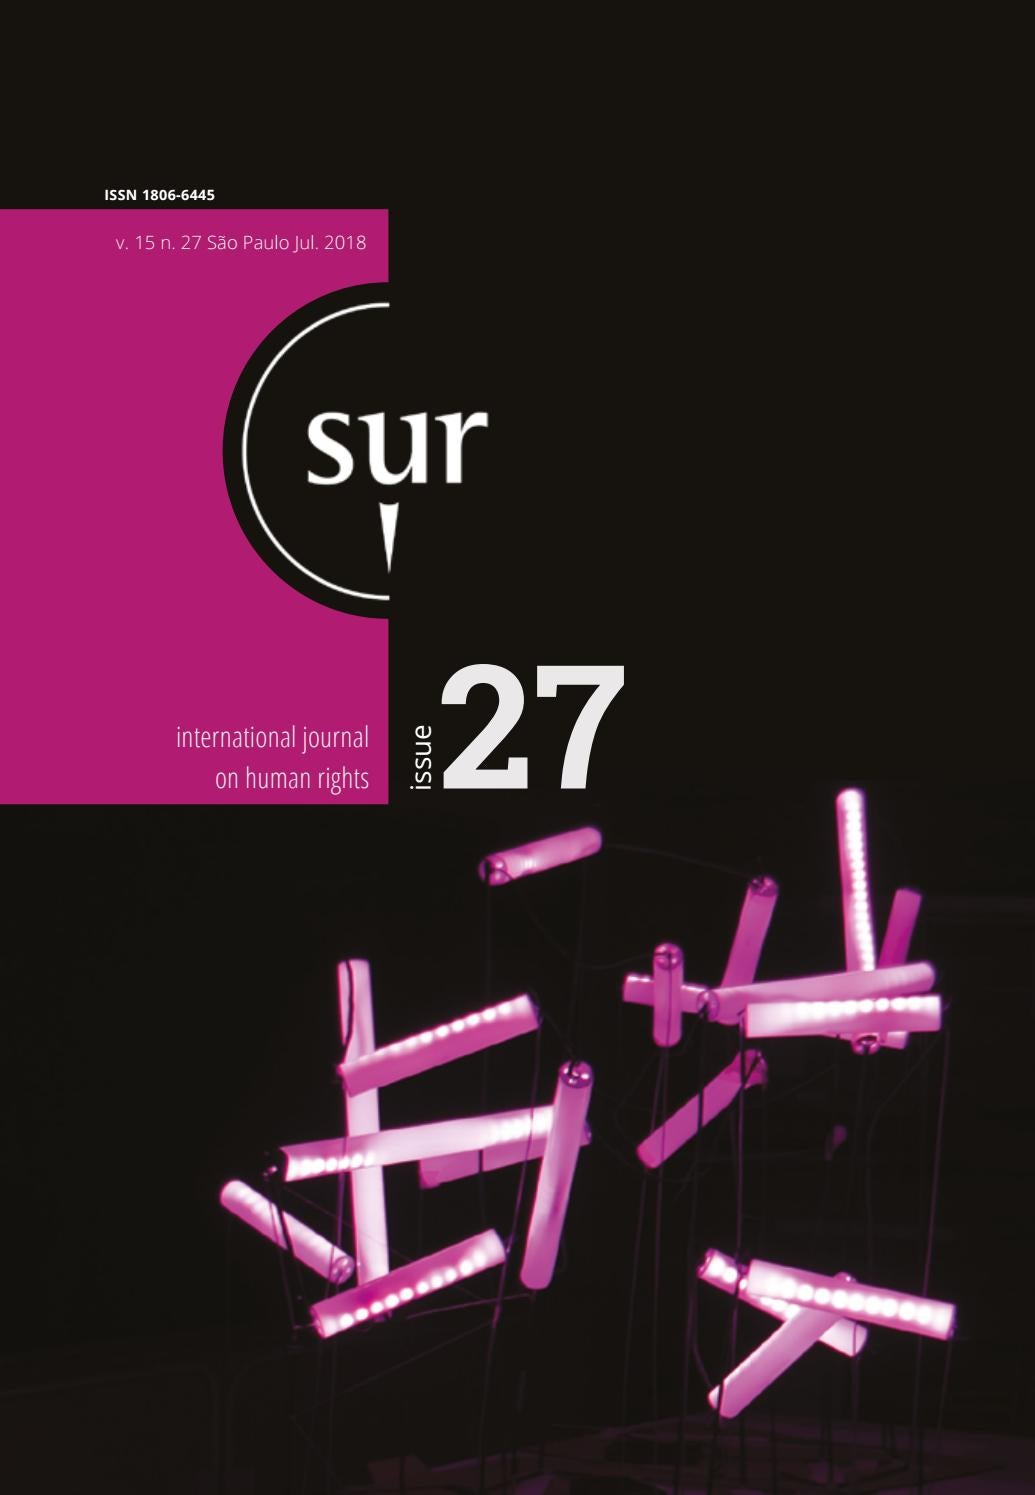 Sur 27 English by Conectas Direitos Humanos - issuu